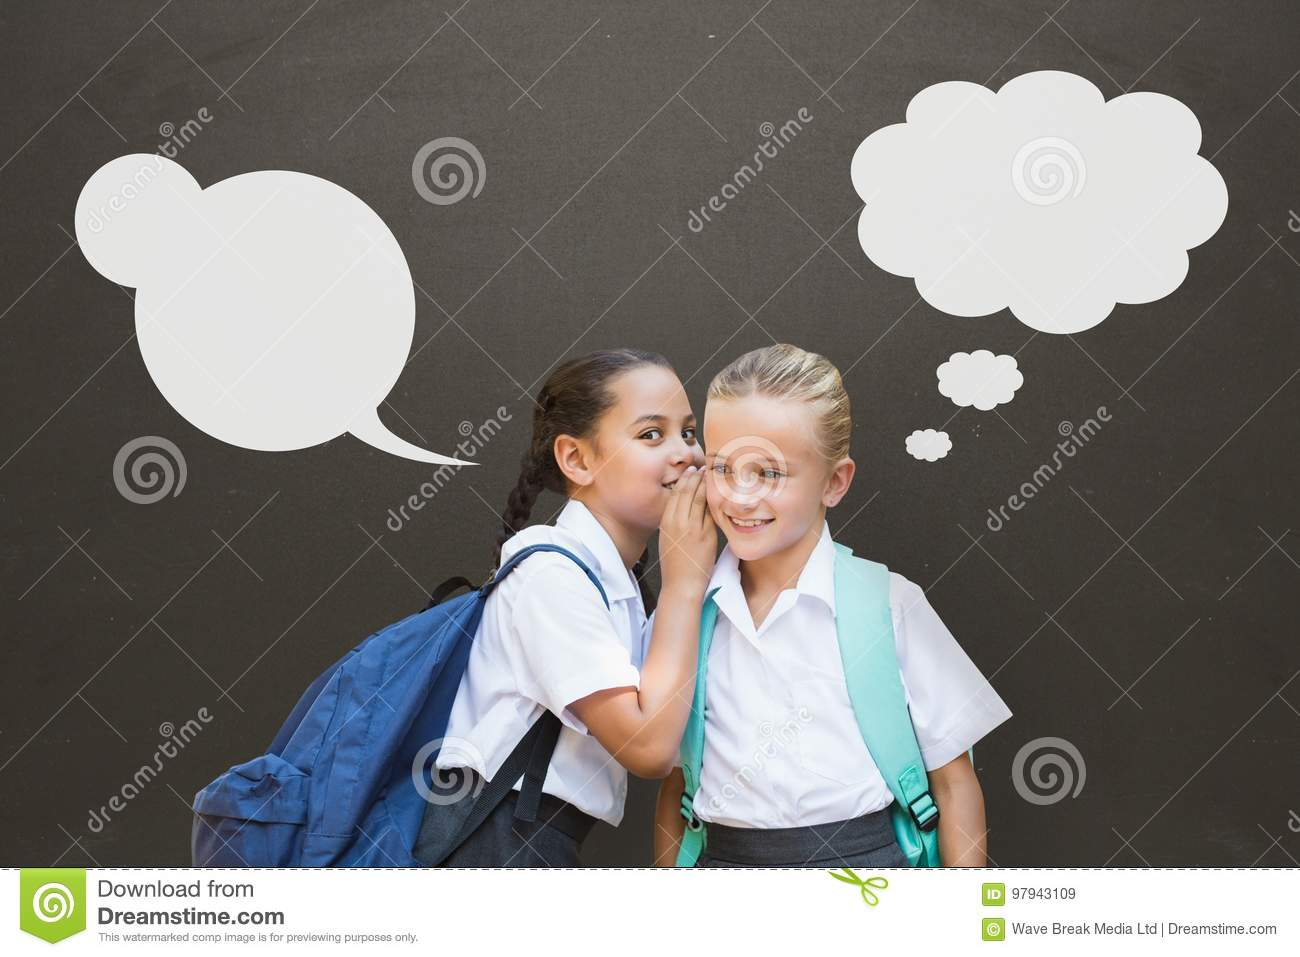 Student girls with speech bubbles whispering against grey background